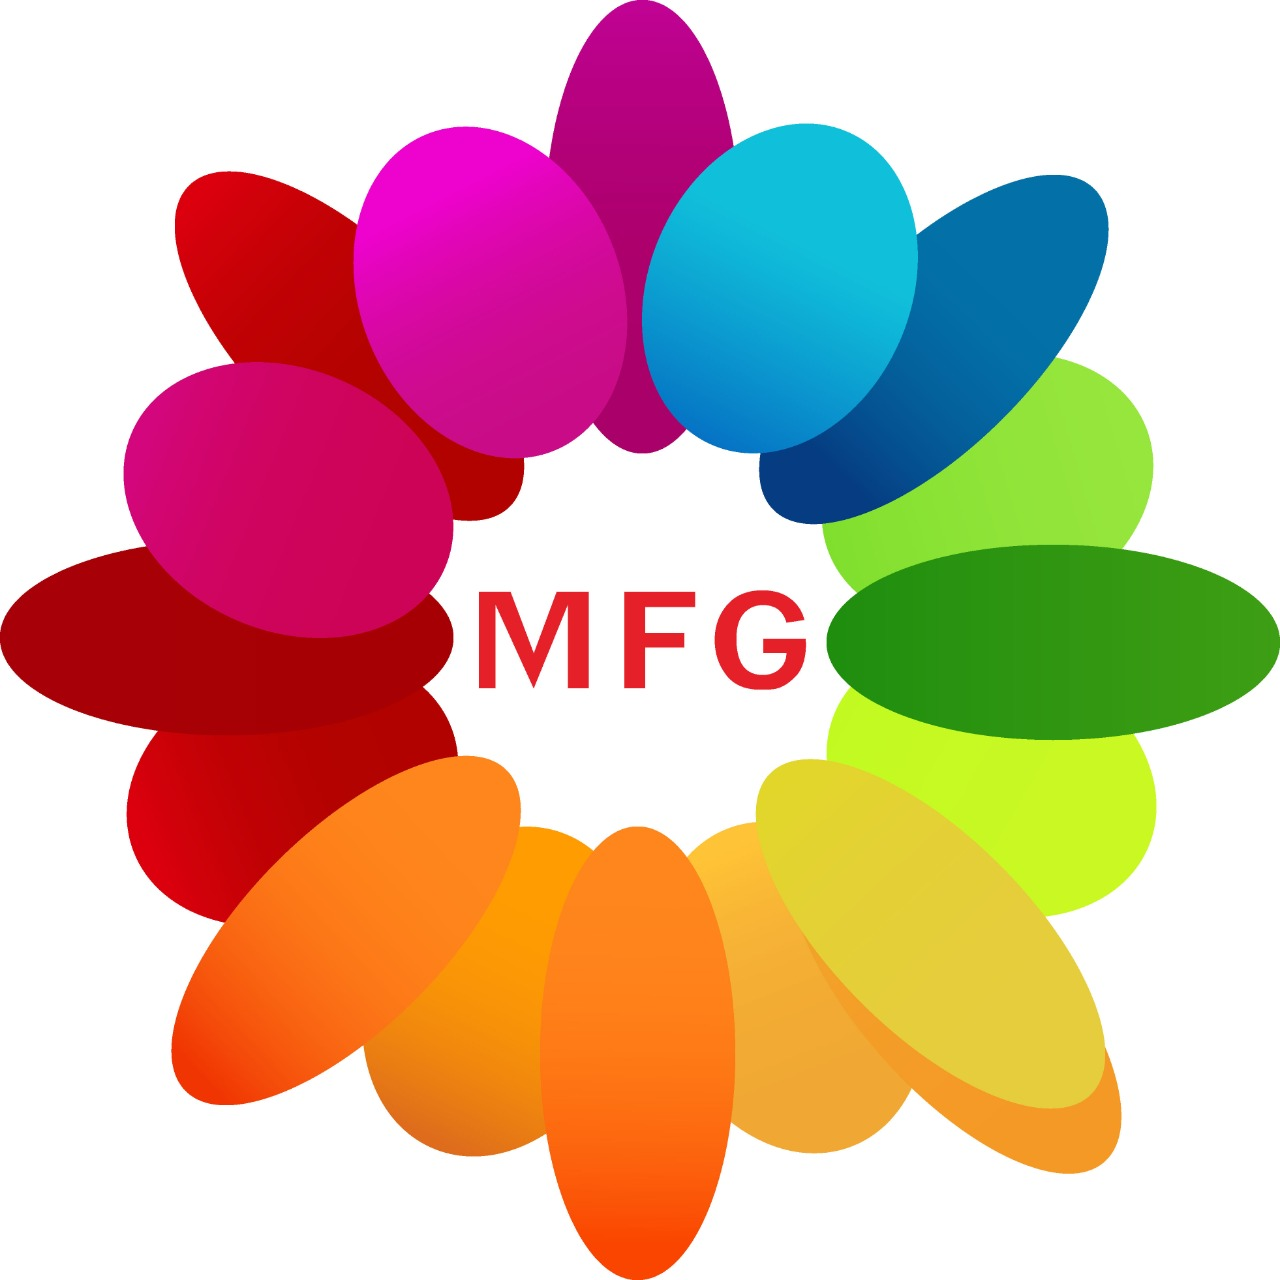 1 feet height teddy sitting in flower basket with mix flower arrangement